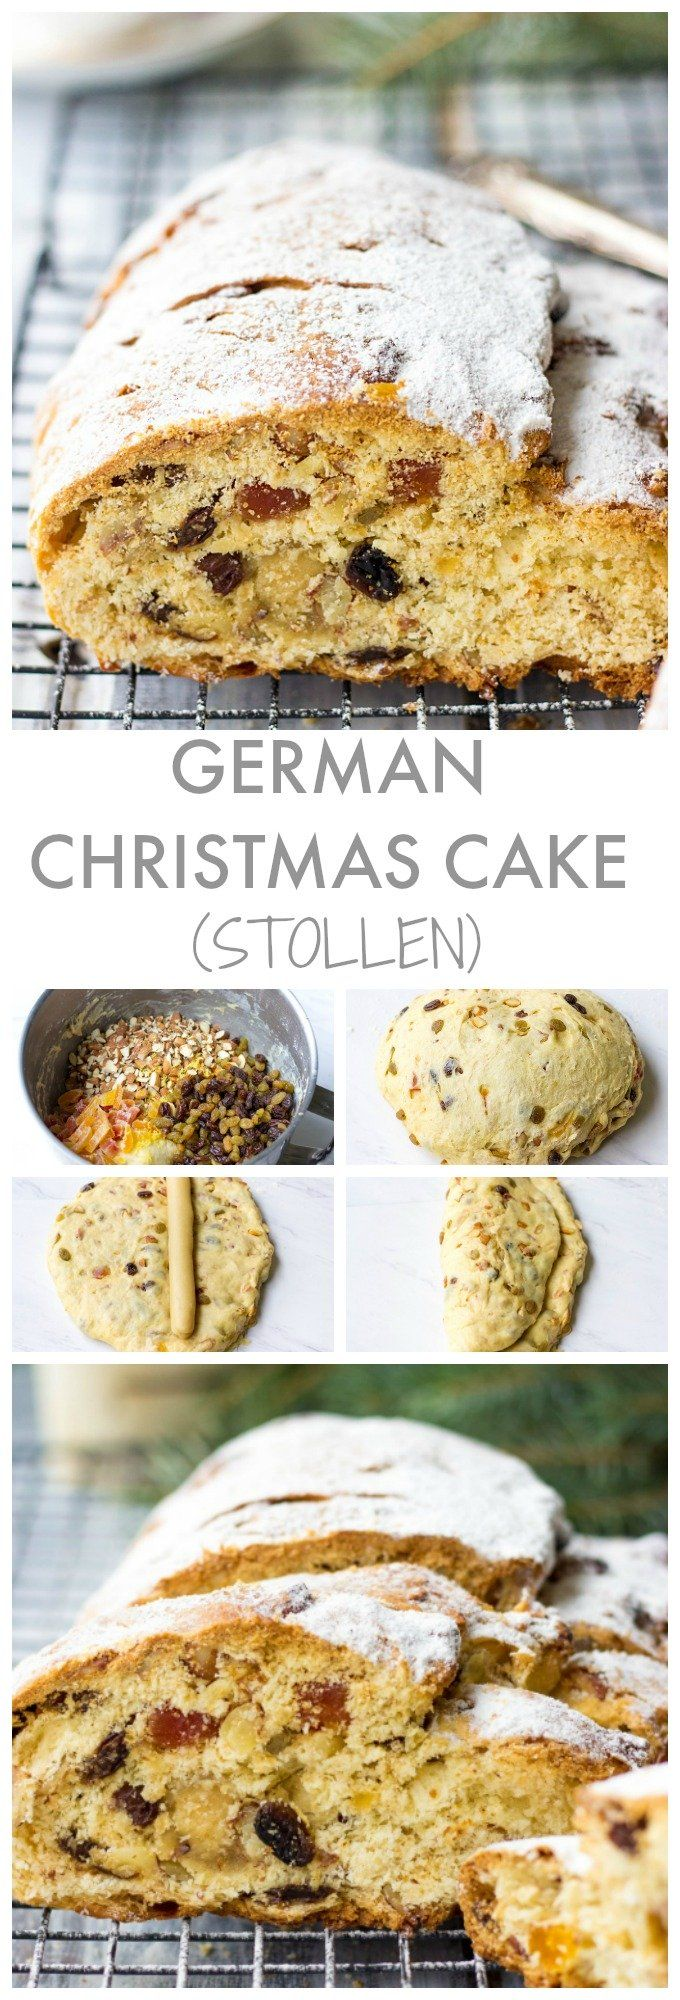 Looking for fancy Christmas desserts? Try German Christmas Cake - Stollen. It is packed with dried fruits, almonds and marzipan and sure to become a beautiful addition on your Christmas dinner table. #christmasdessertideas #christmasrecipes #christmasdinnerrecipes